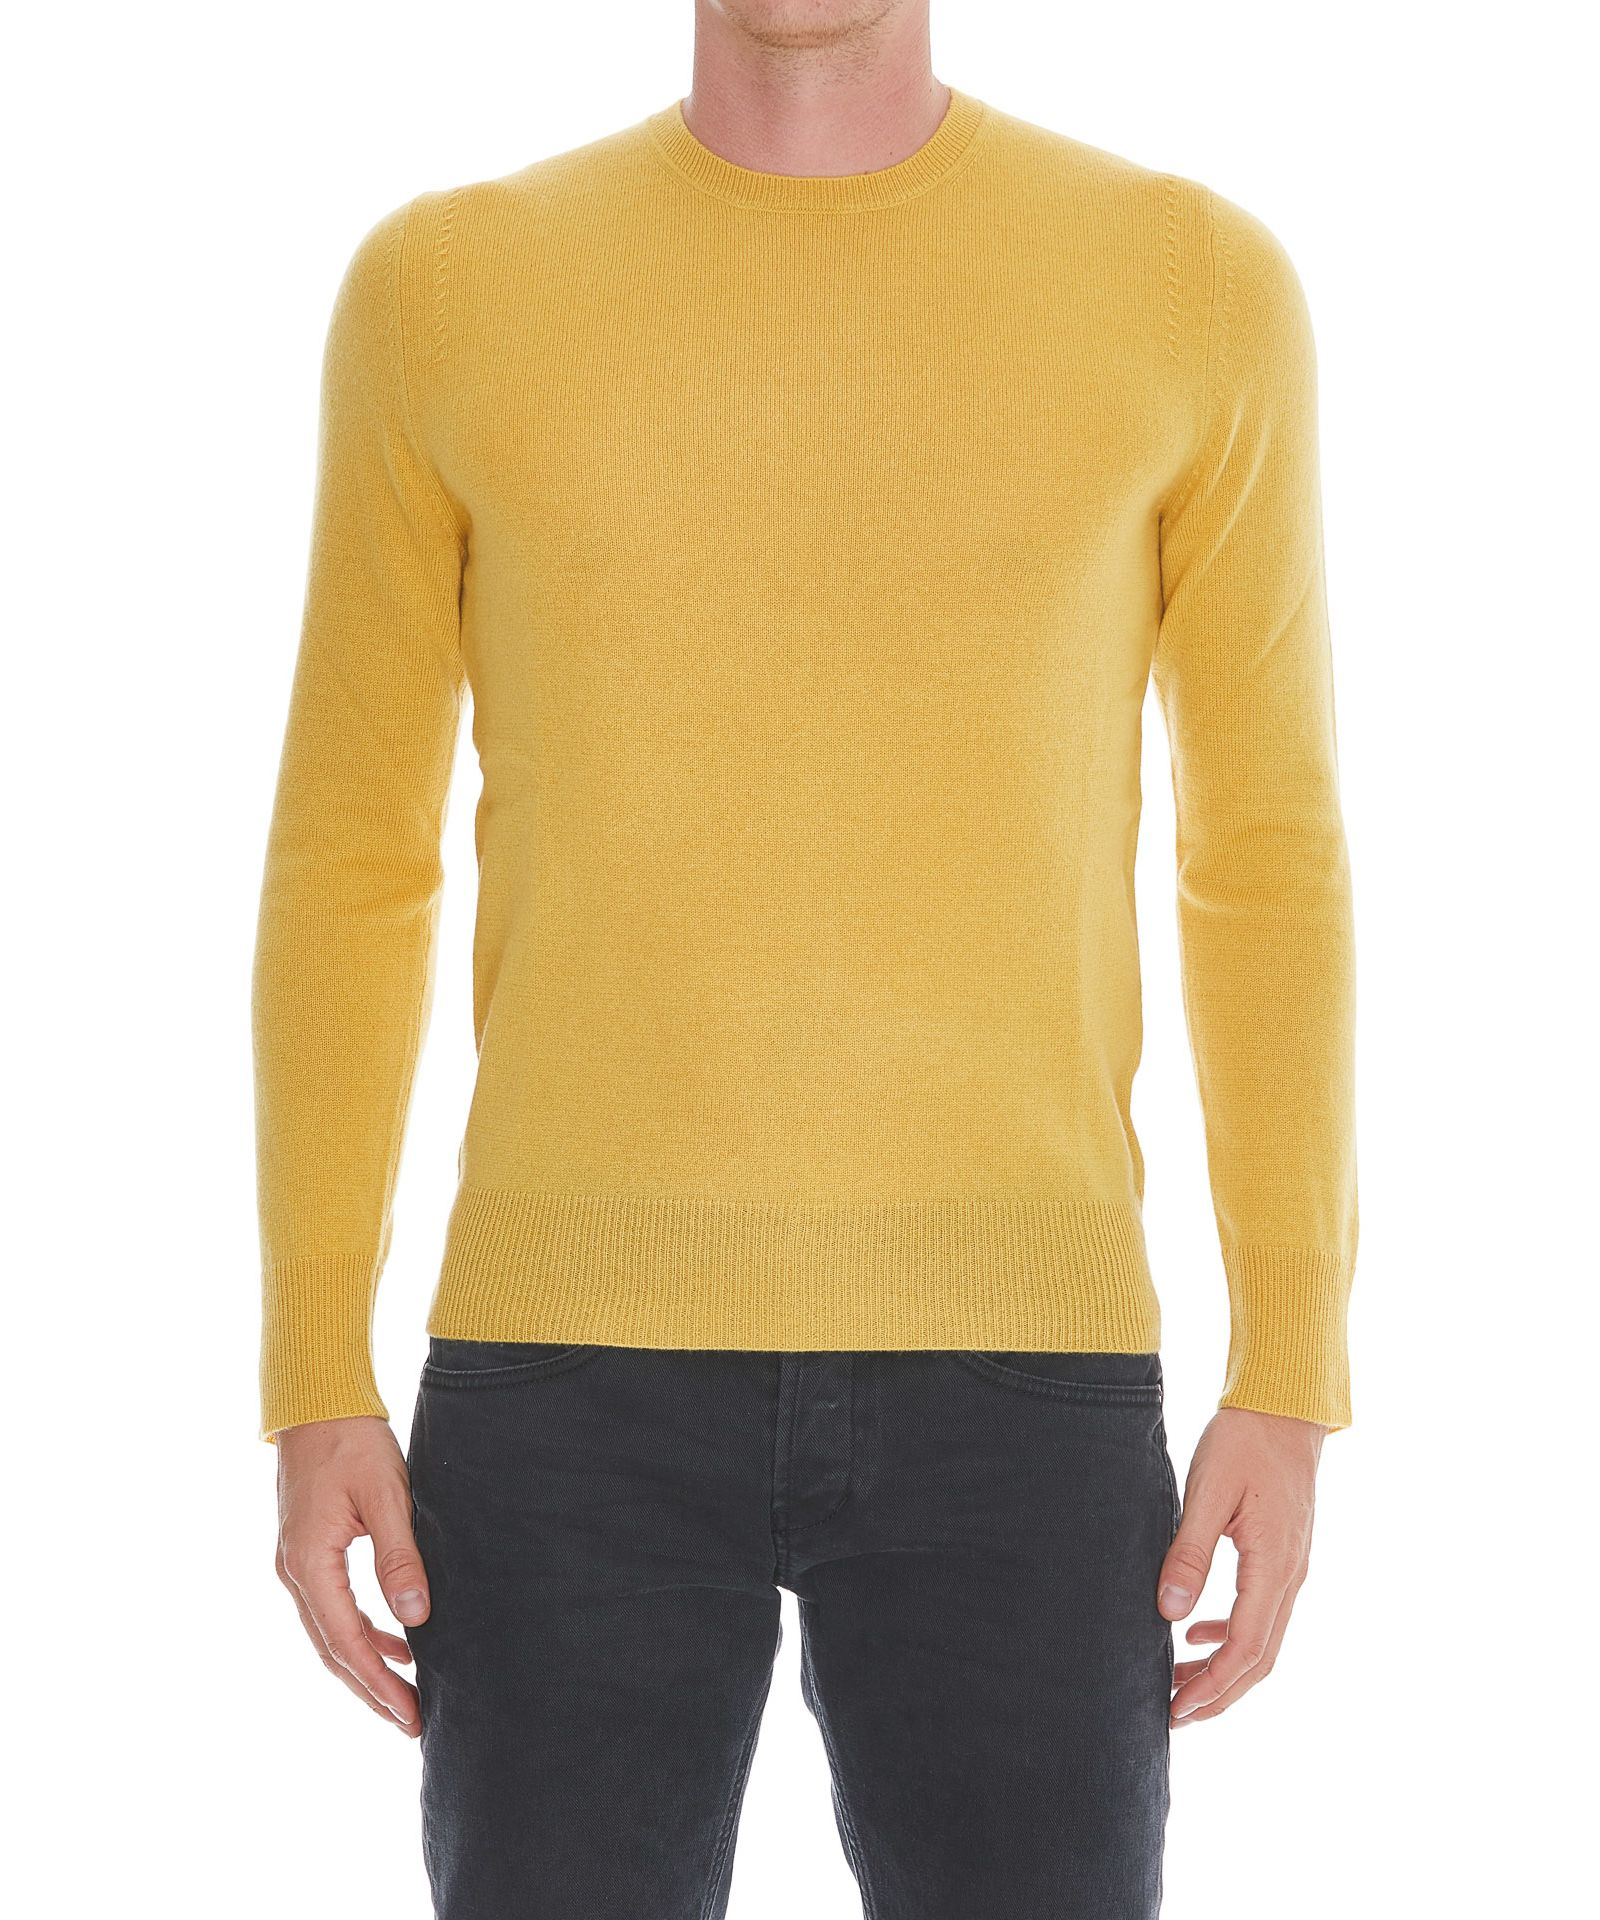 HŌSIO Sweater in Yellow